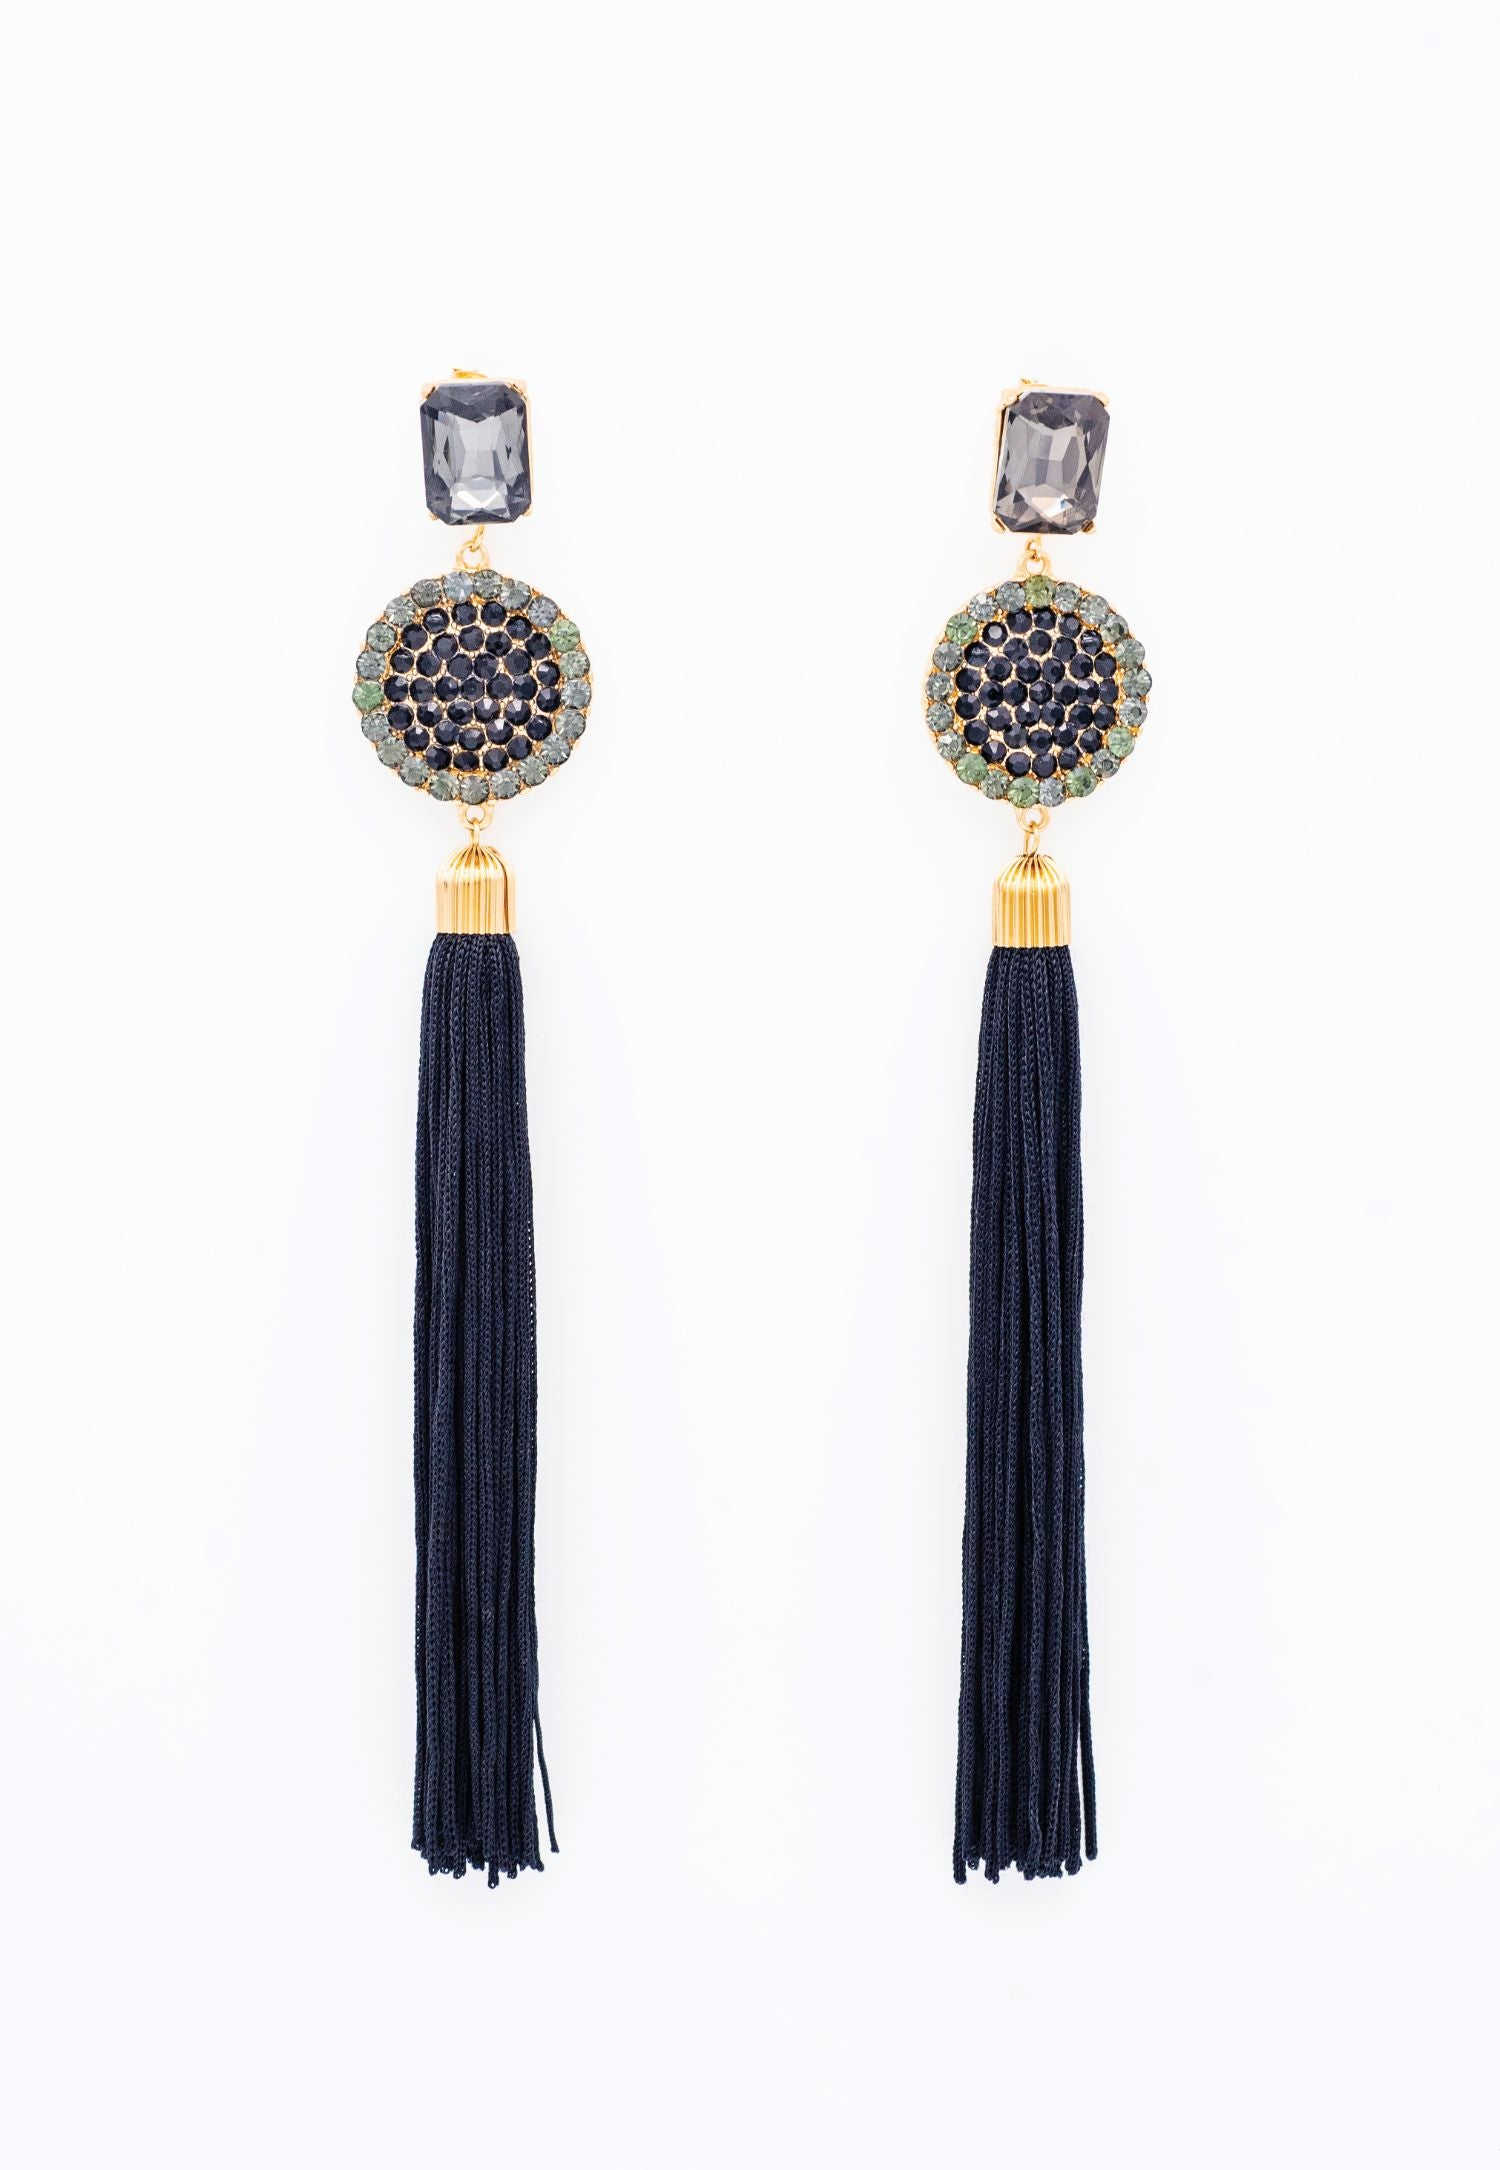 BLACK, GOLD AND TASSLE EARRINGS